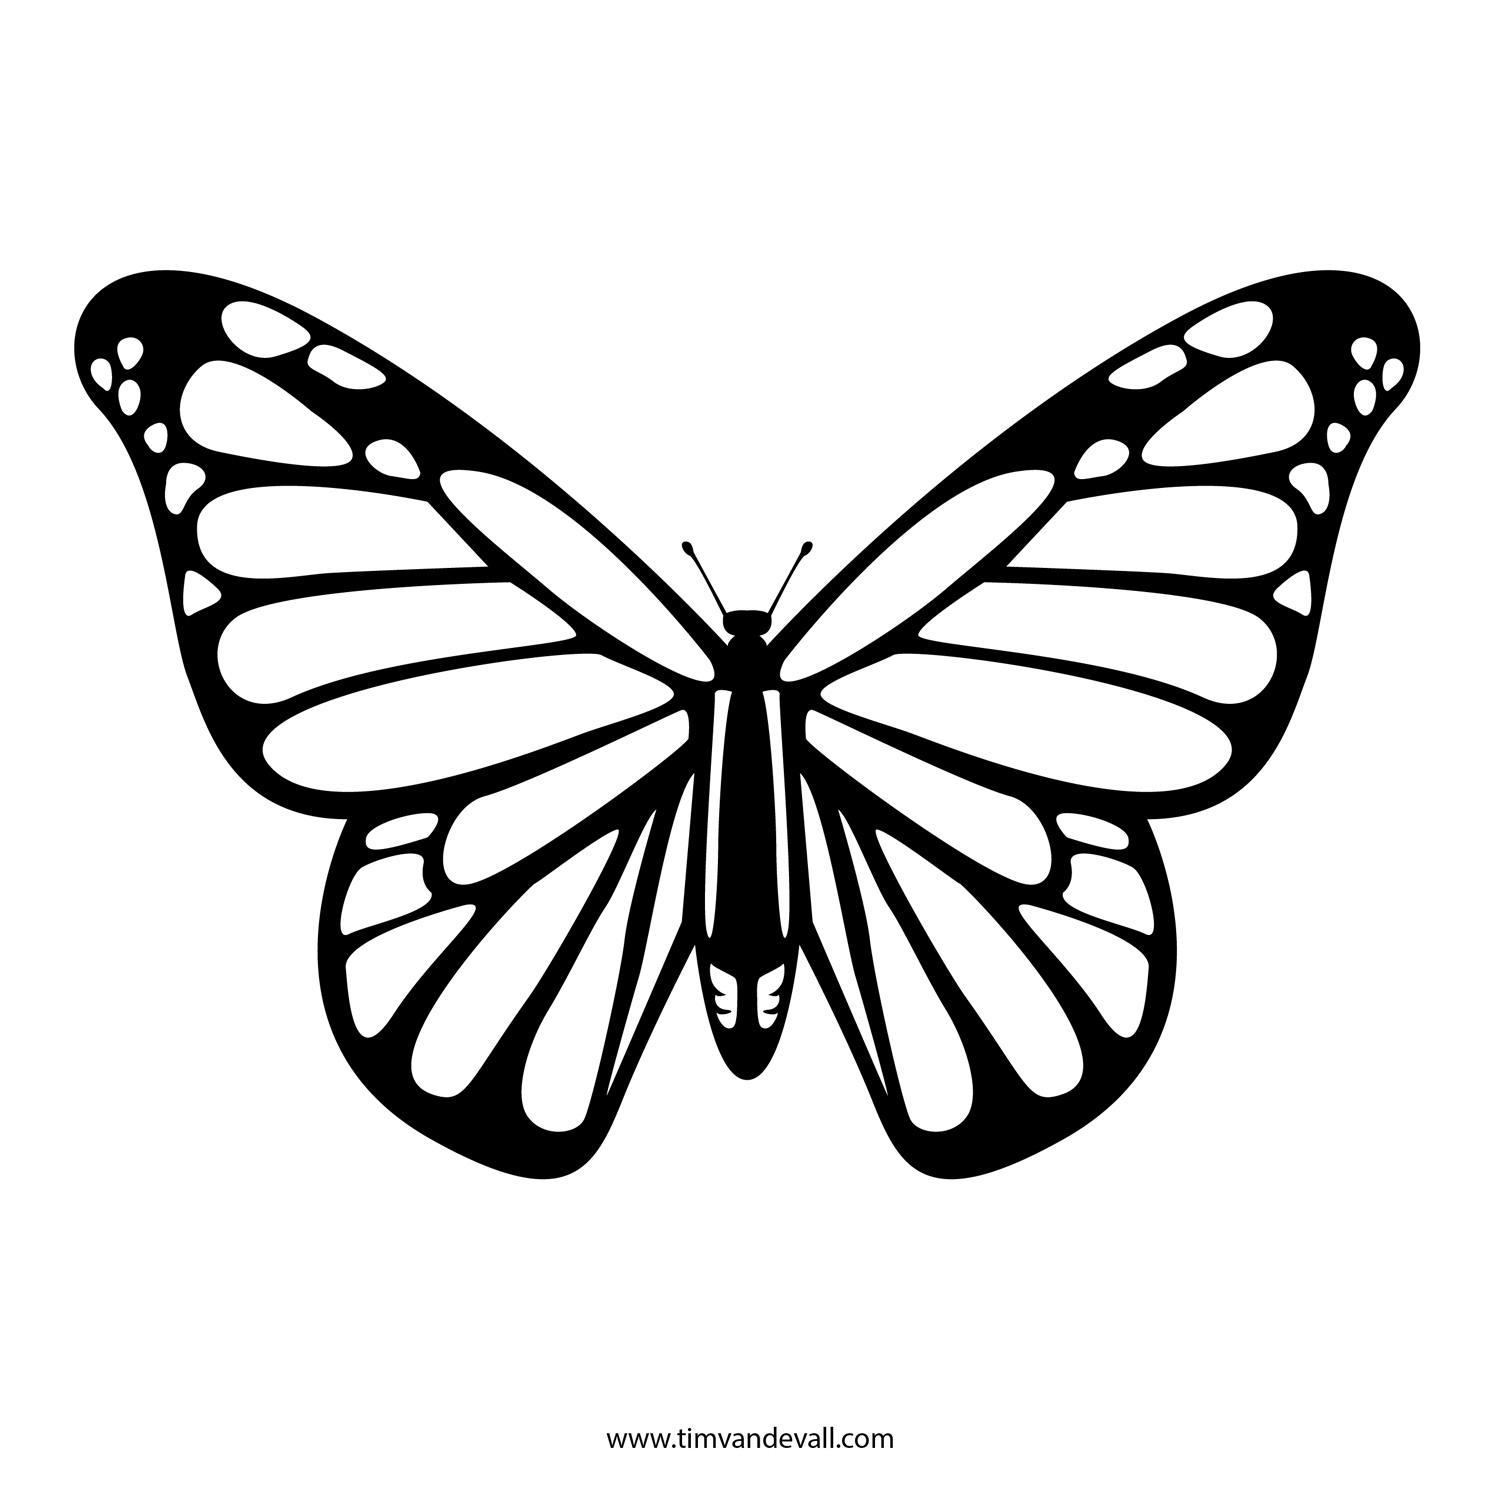 7 Images of Butterfly Wing Printable Stencils